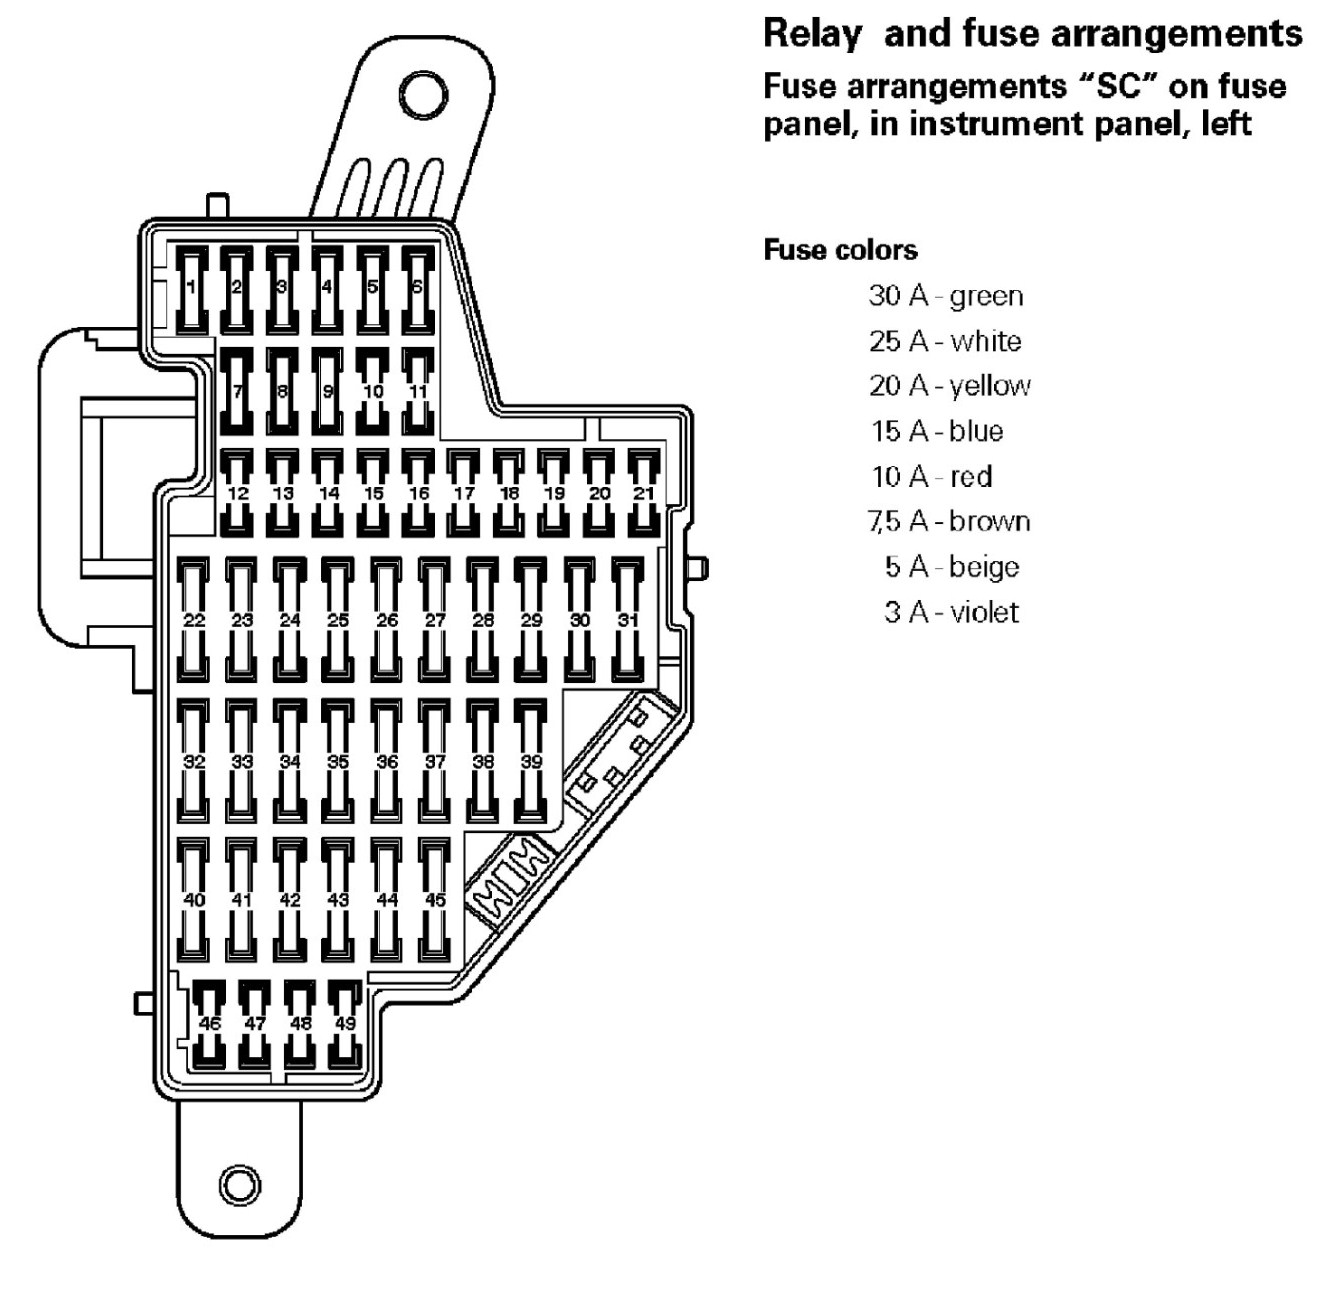 2005 Volkswagen Jetta Fuse Box - Wiring Diagram Recent calm-desk -  calm-desk.cosavedereanapoli.it | 2005 Jetta Fuse Box Diagram |  | calm-desk.cosavedereanapoli.it